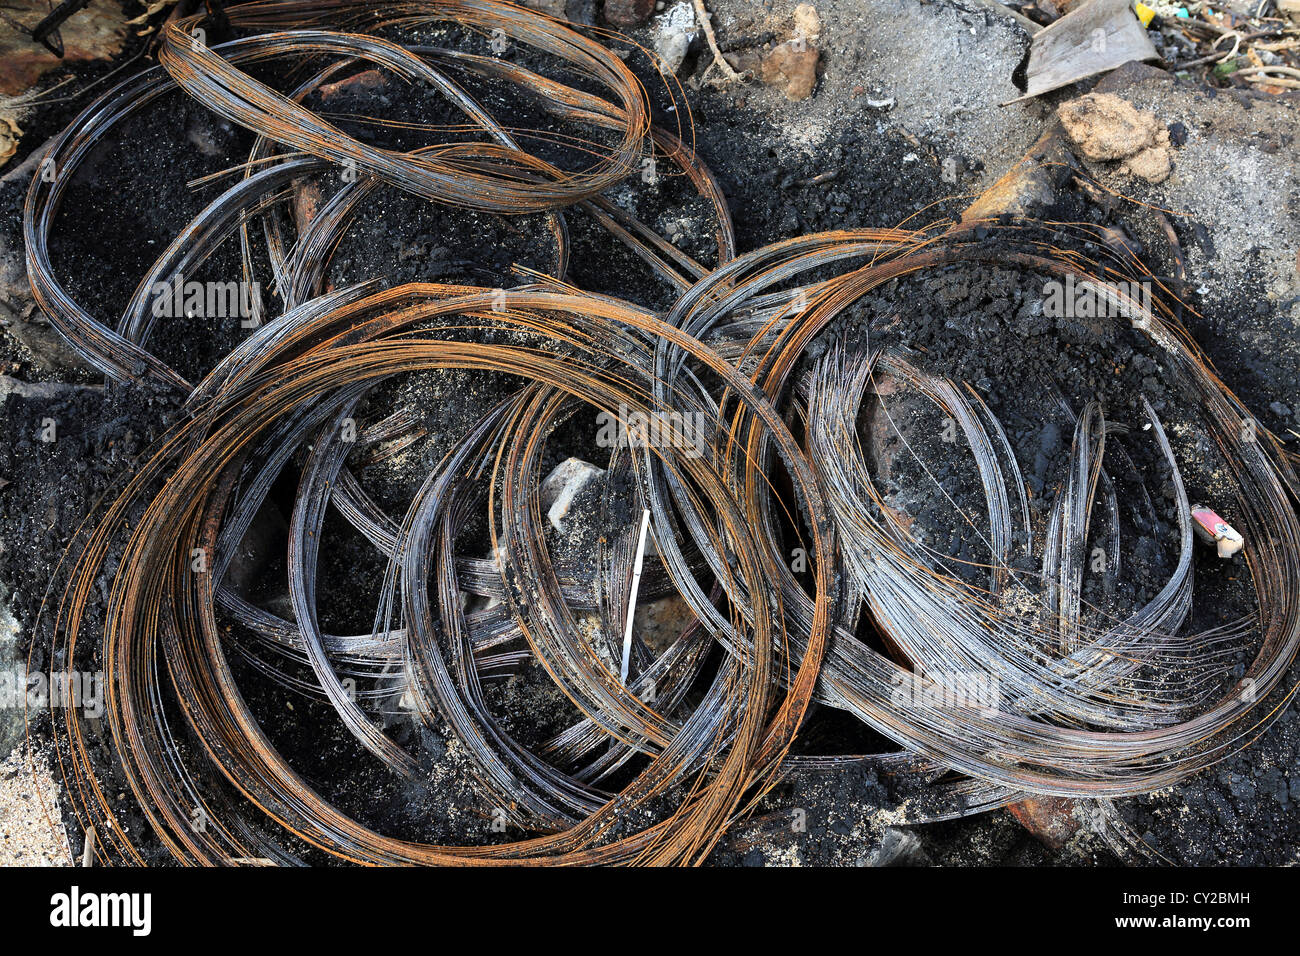 Steel wire remains of burnt out vehicle tires on Sri Lankan beach - Stock Image